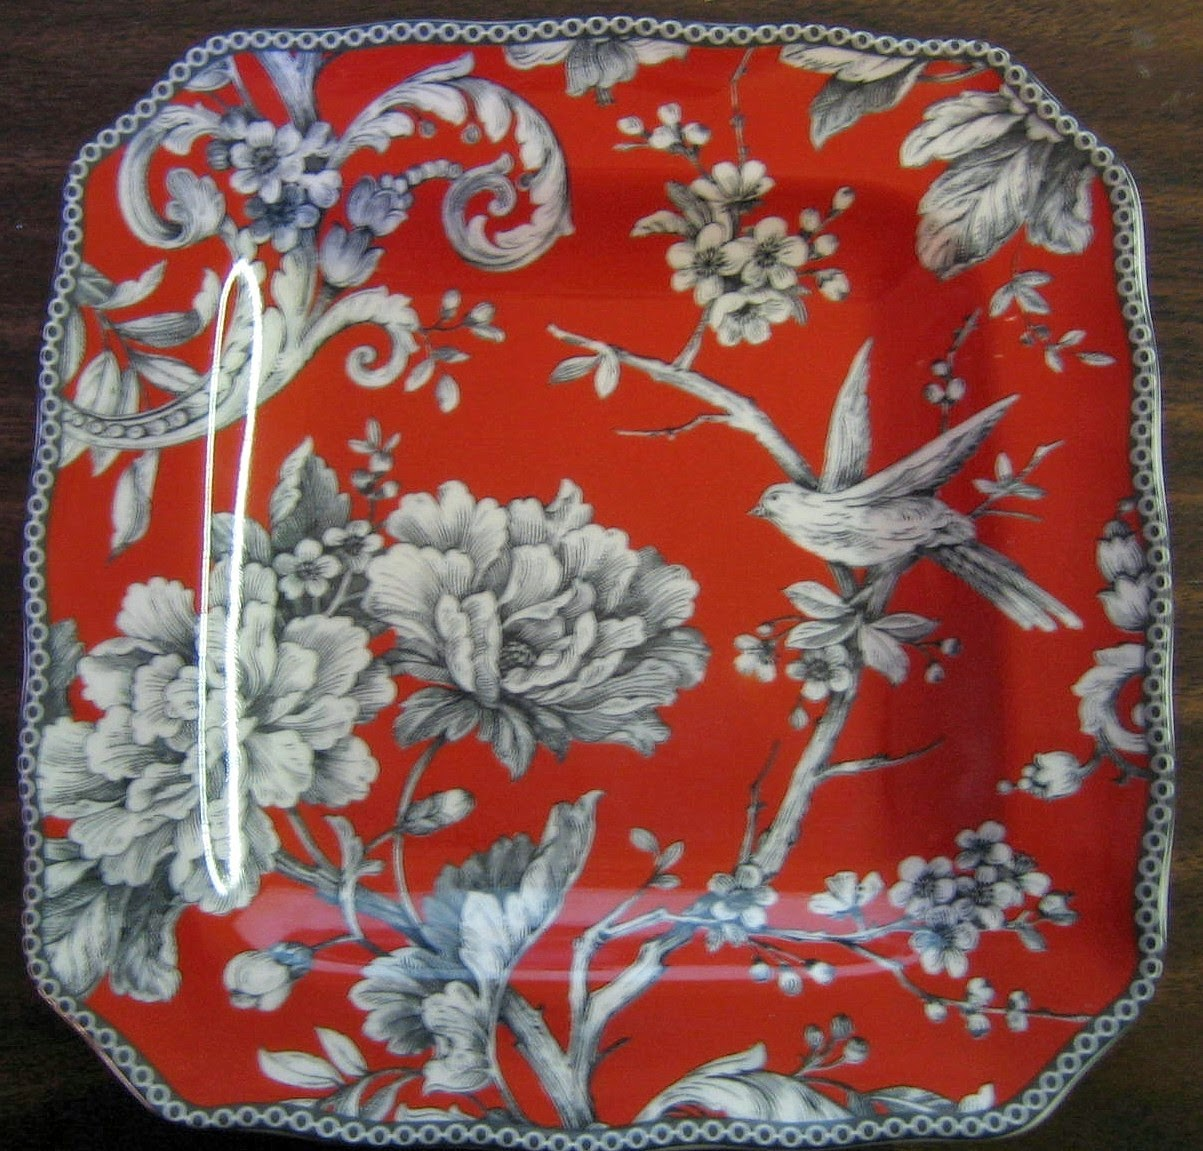 http://www.decorativedishes.net/decorative-plate-3-d-red-black-rose-bird-branch-blossom-square-medium-size/